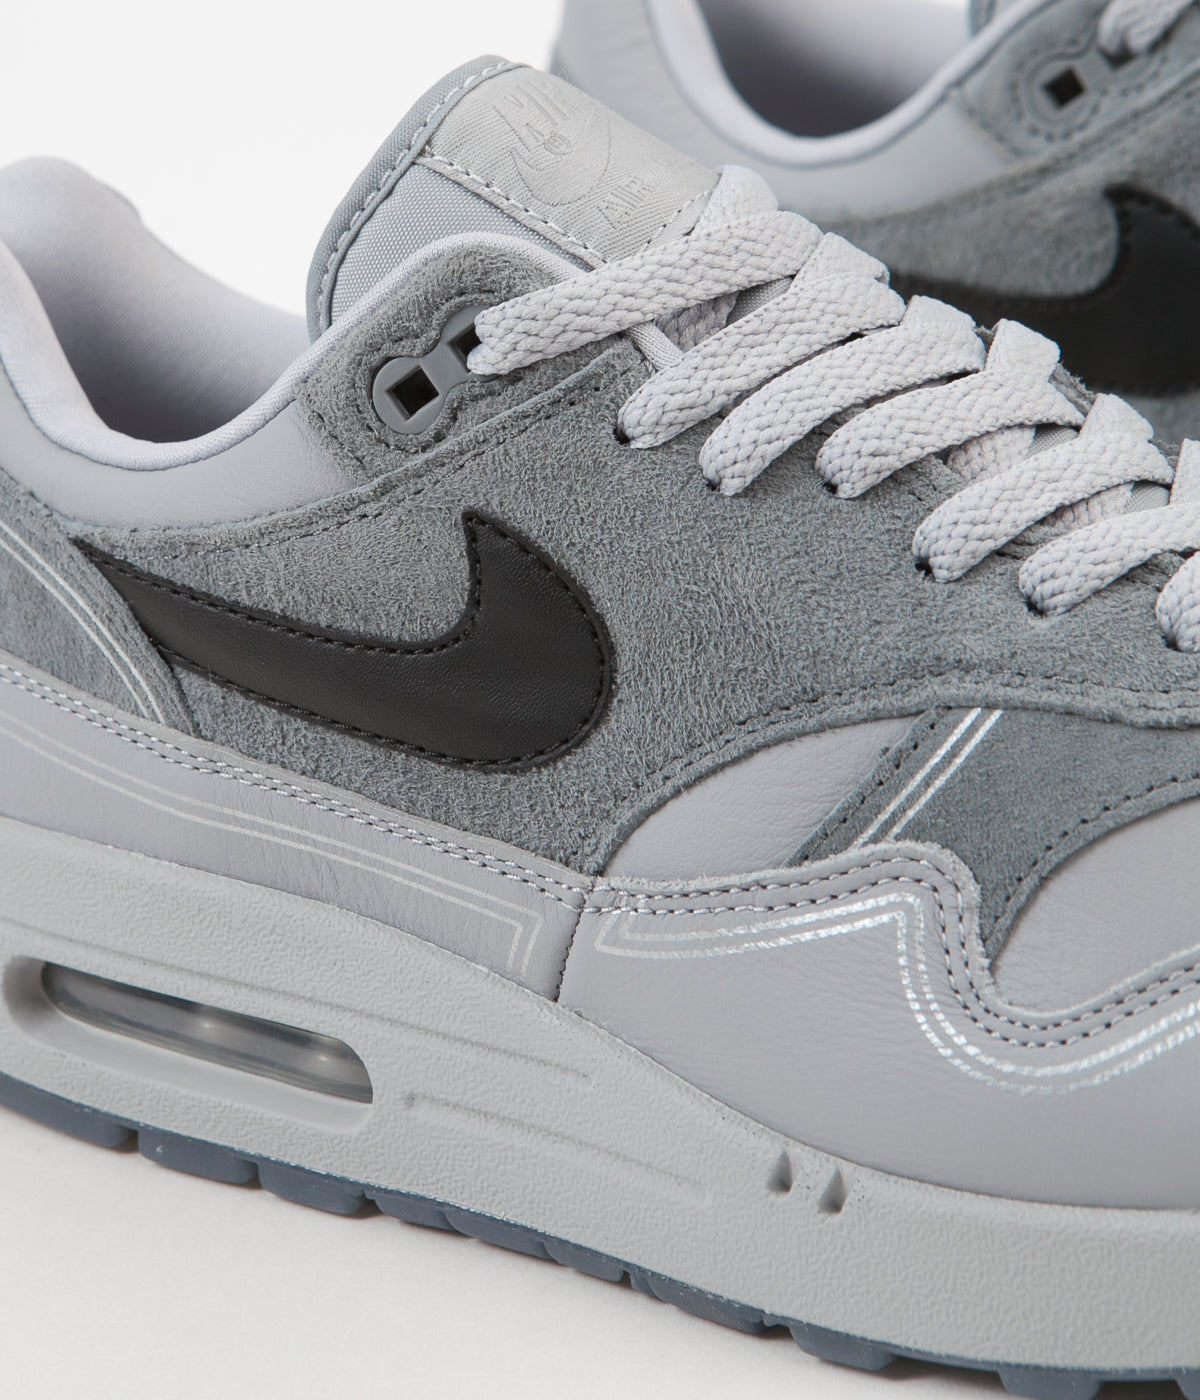 e0b2ce3da05 Nike Air Max 1 Centre Pompidou Shoes - Wolf Grey / Black - Cool Grey ...